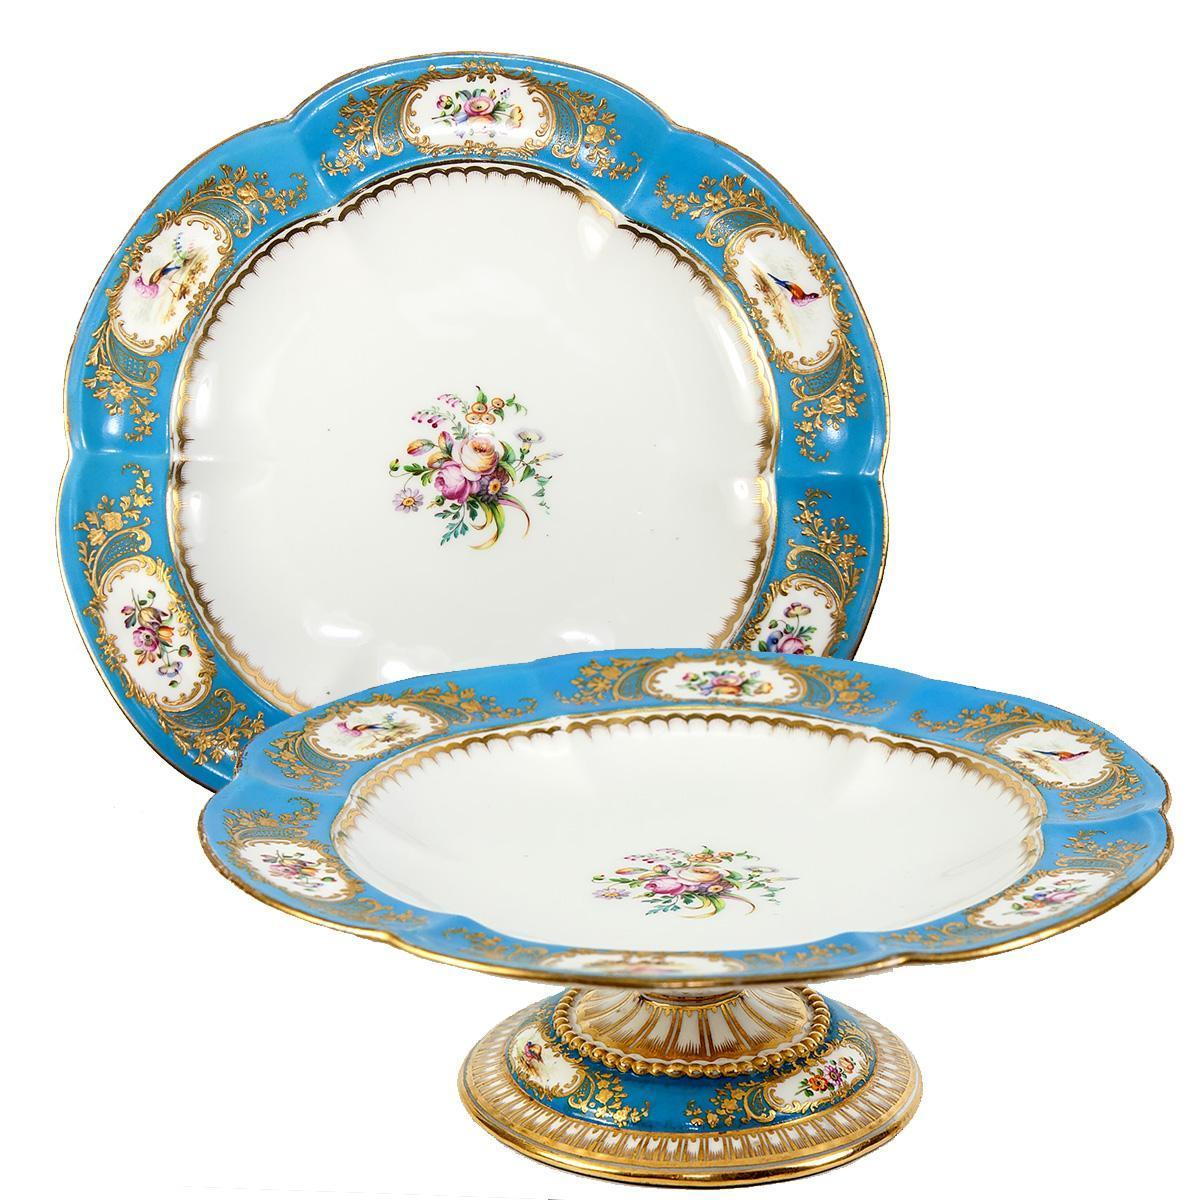 RARE Antique French Serving Tazza, Tray, Old Paris Porcelain, Raised Gold Enamel + Ornithological with Flowers